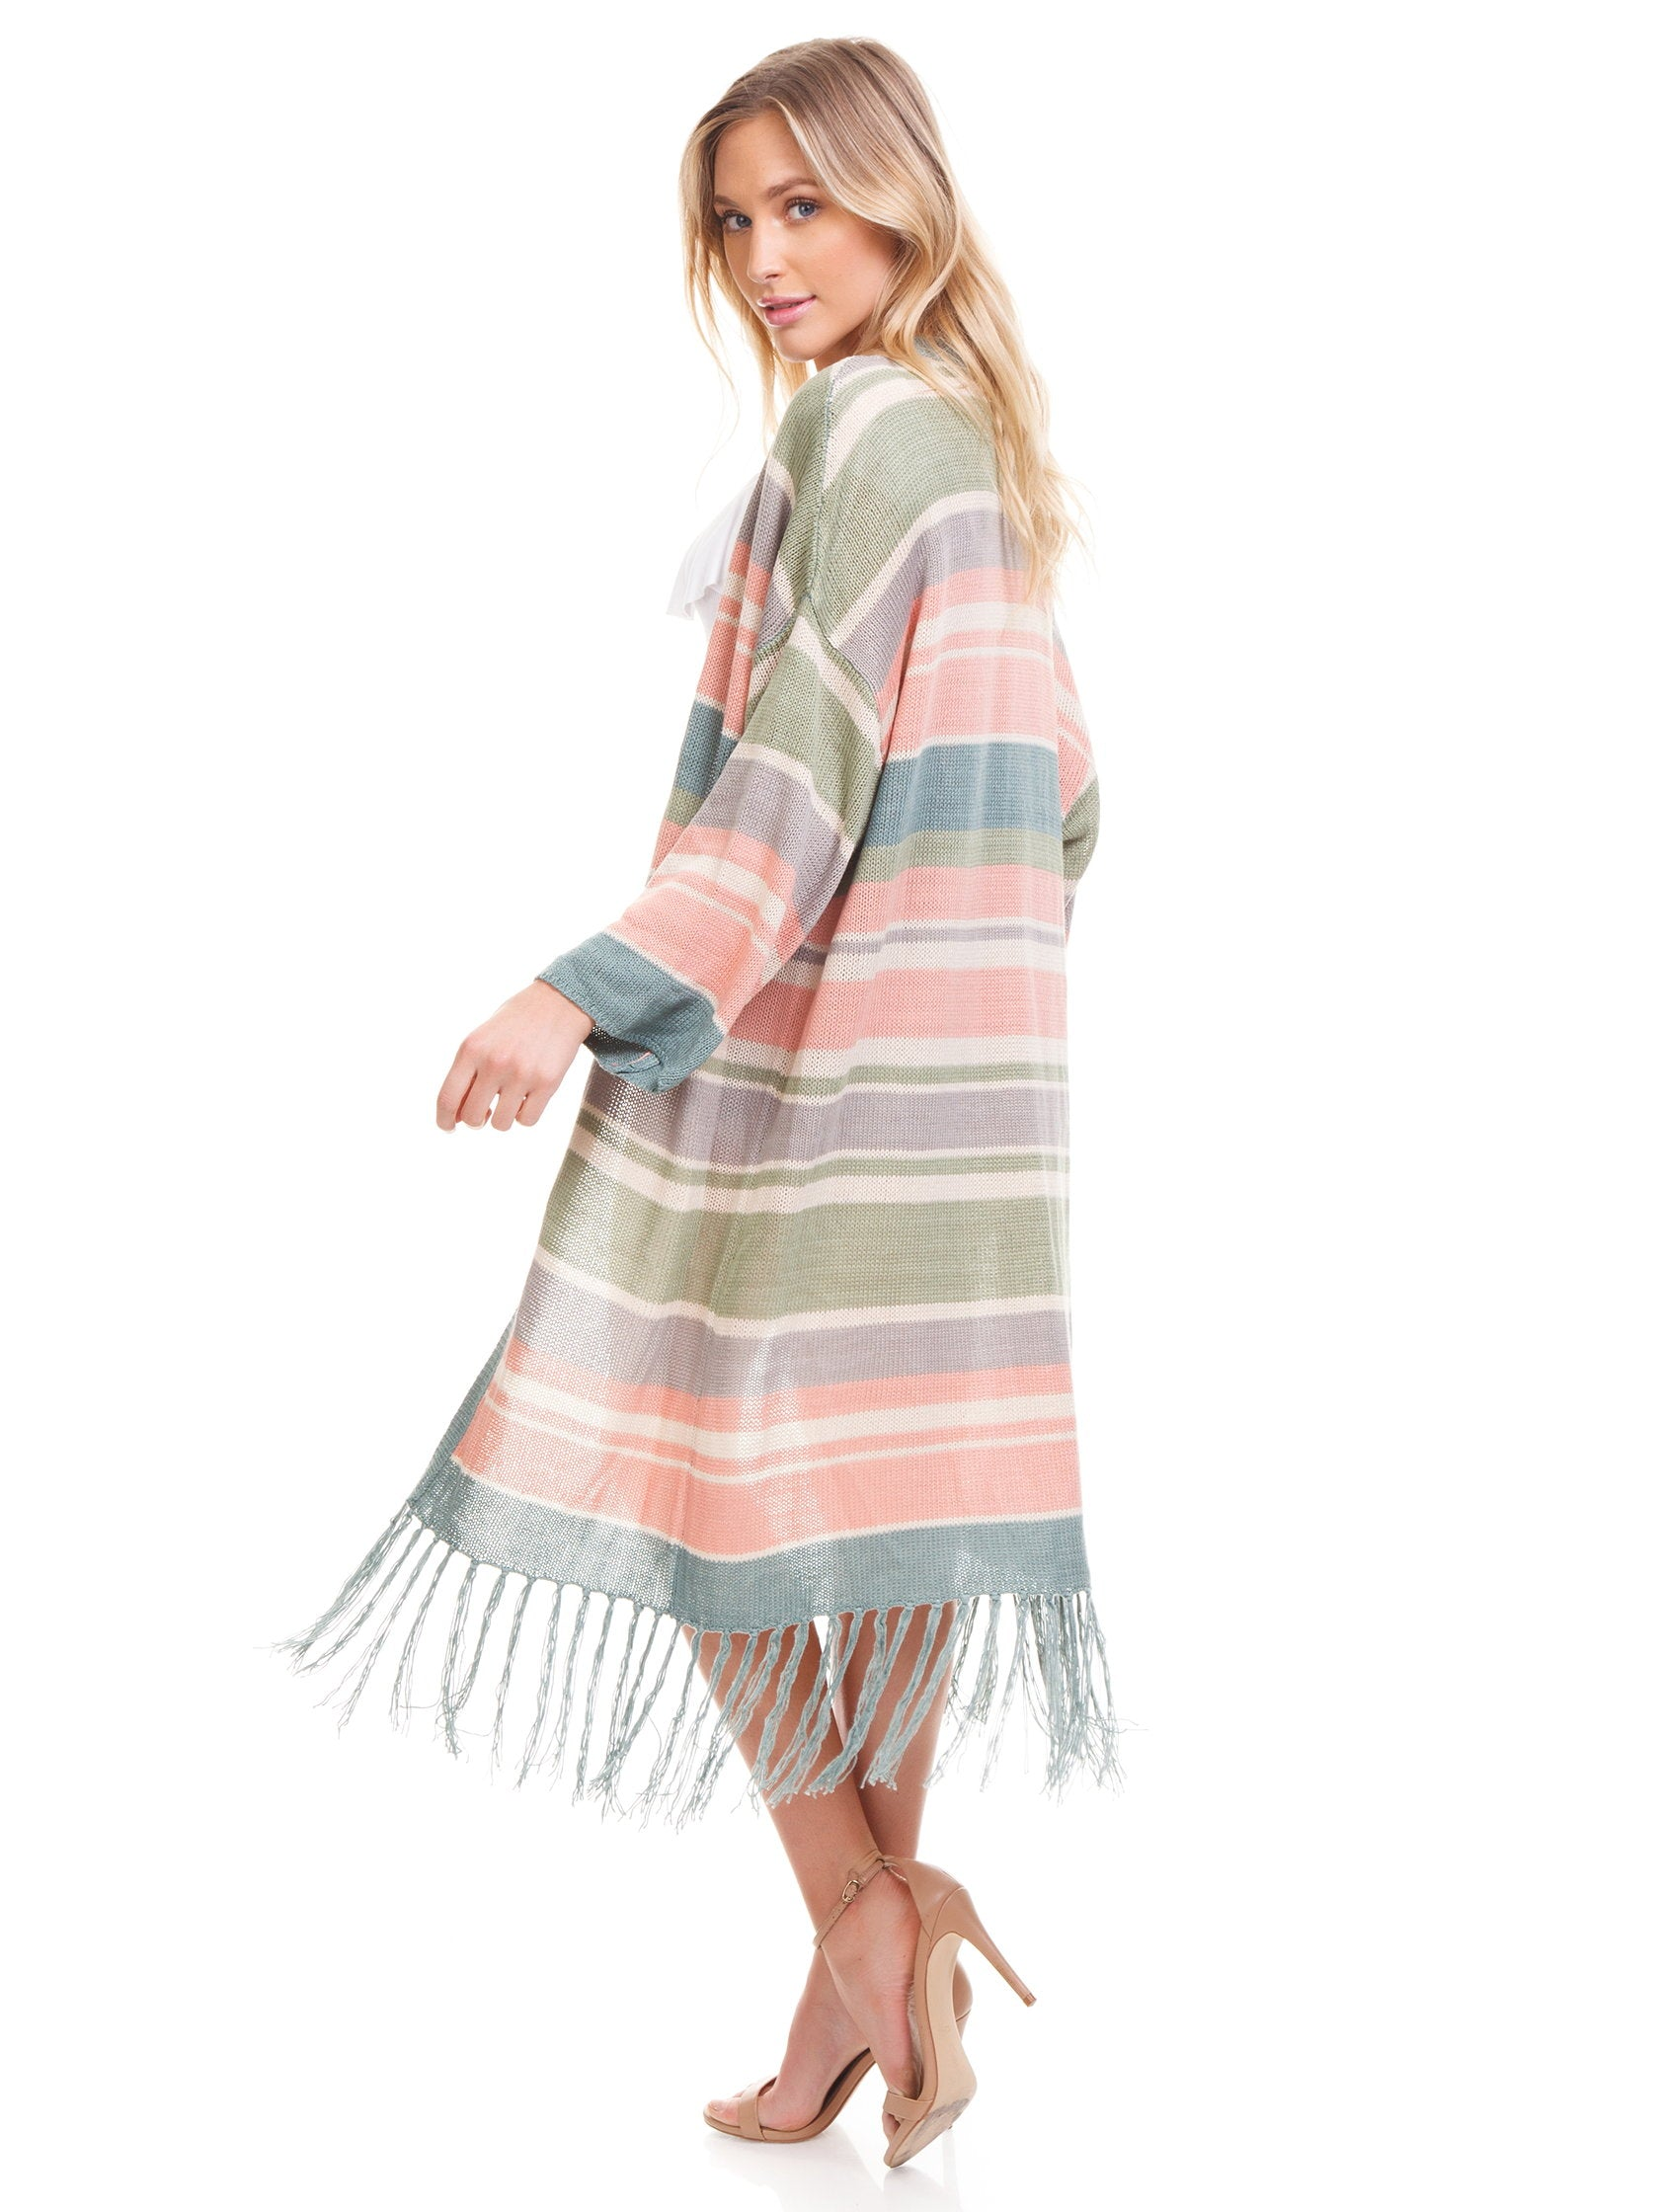 Women wearing a sweater rental from Show Me Your Mumu called Maude Fringe Cardigan